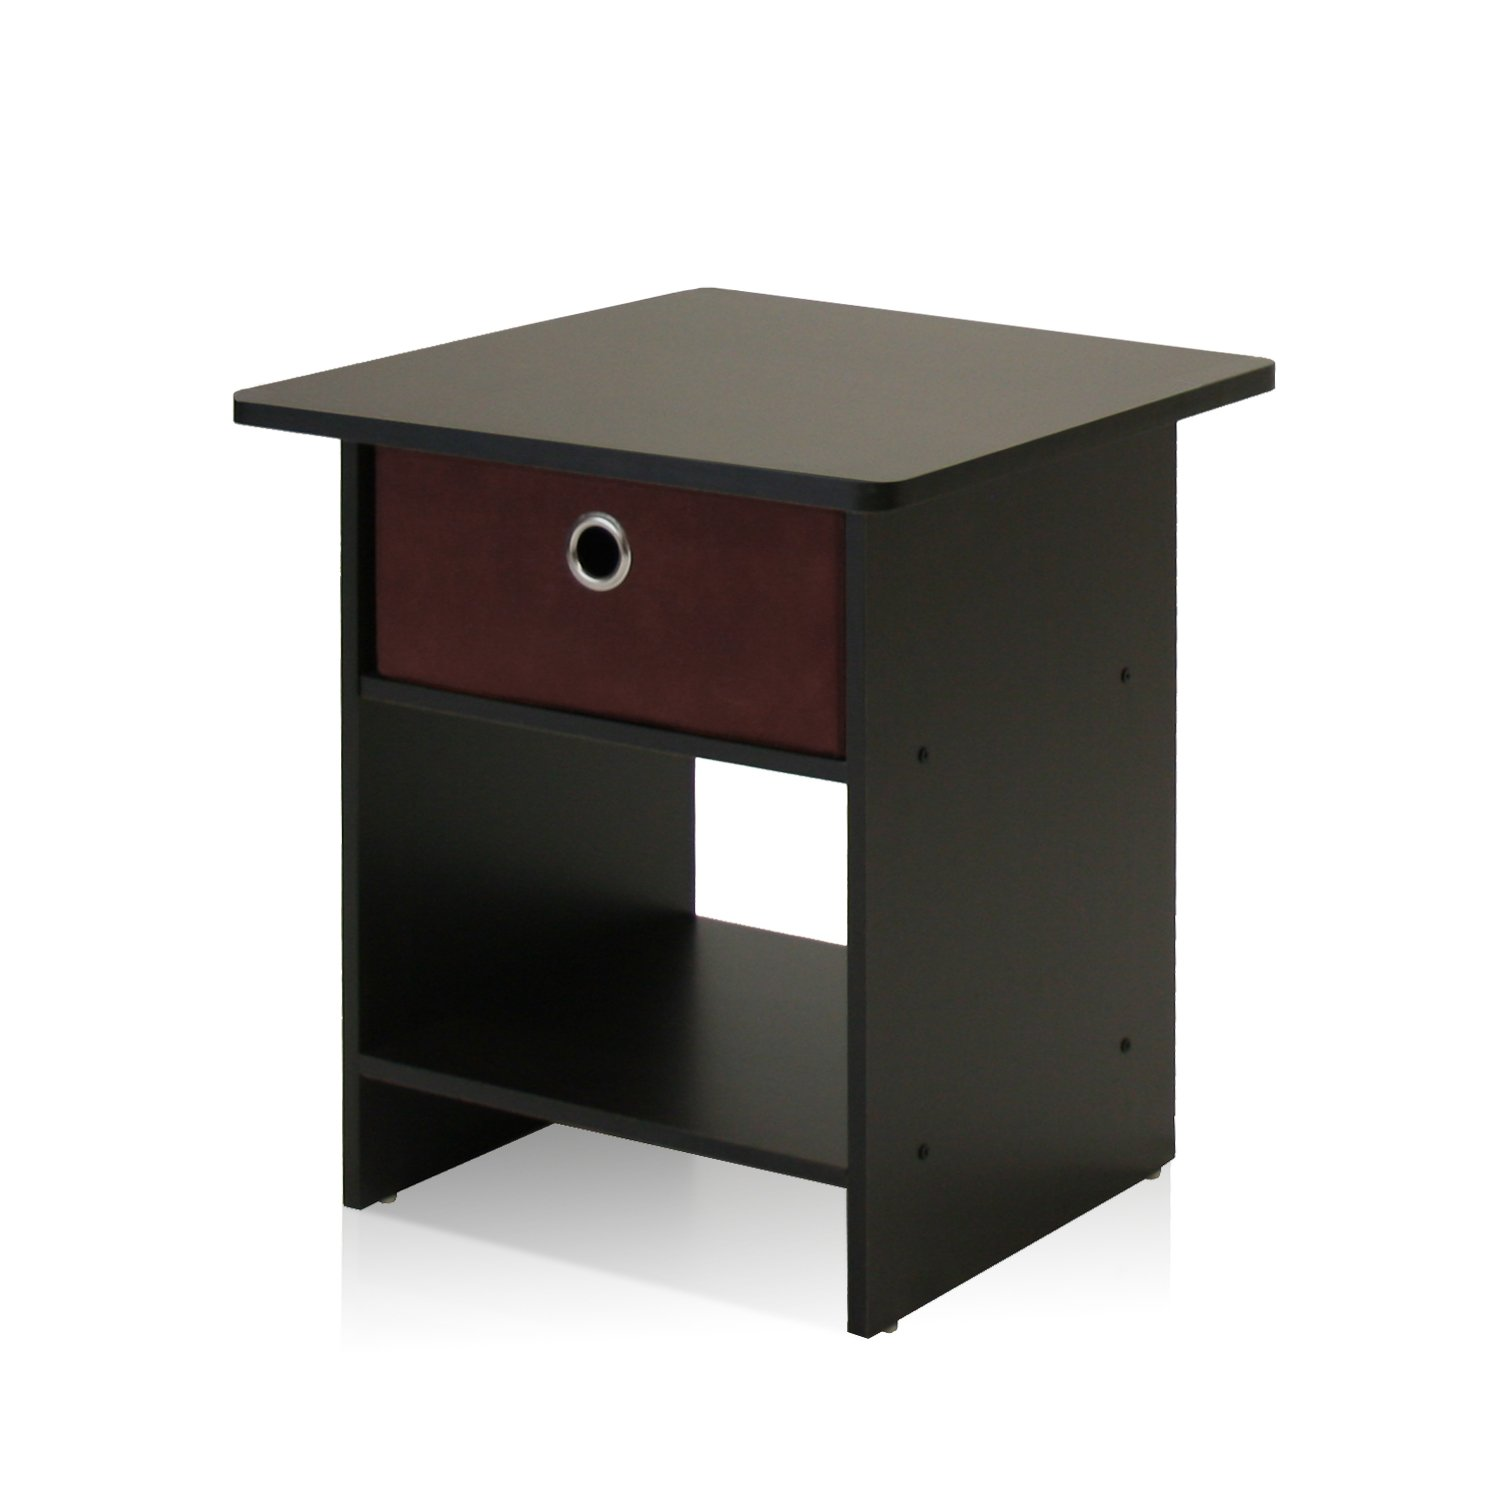 Furinno 10004EX/BR End Table/Night Stand Storage Shelf with Bin Drawer, Dark Espresso Finish